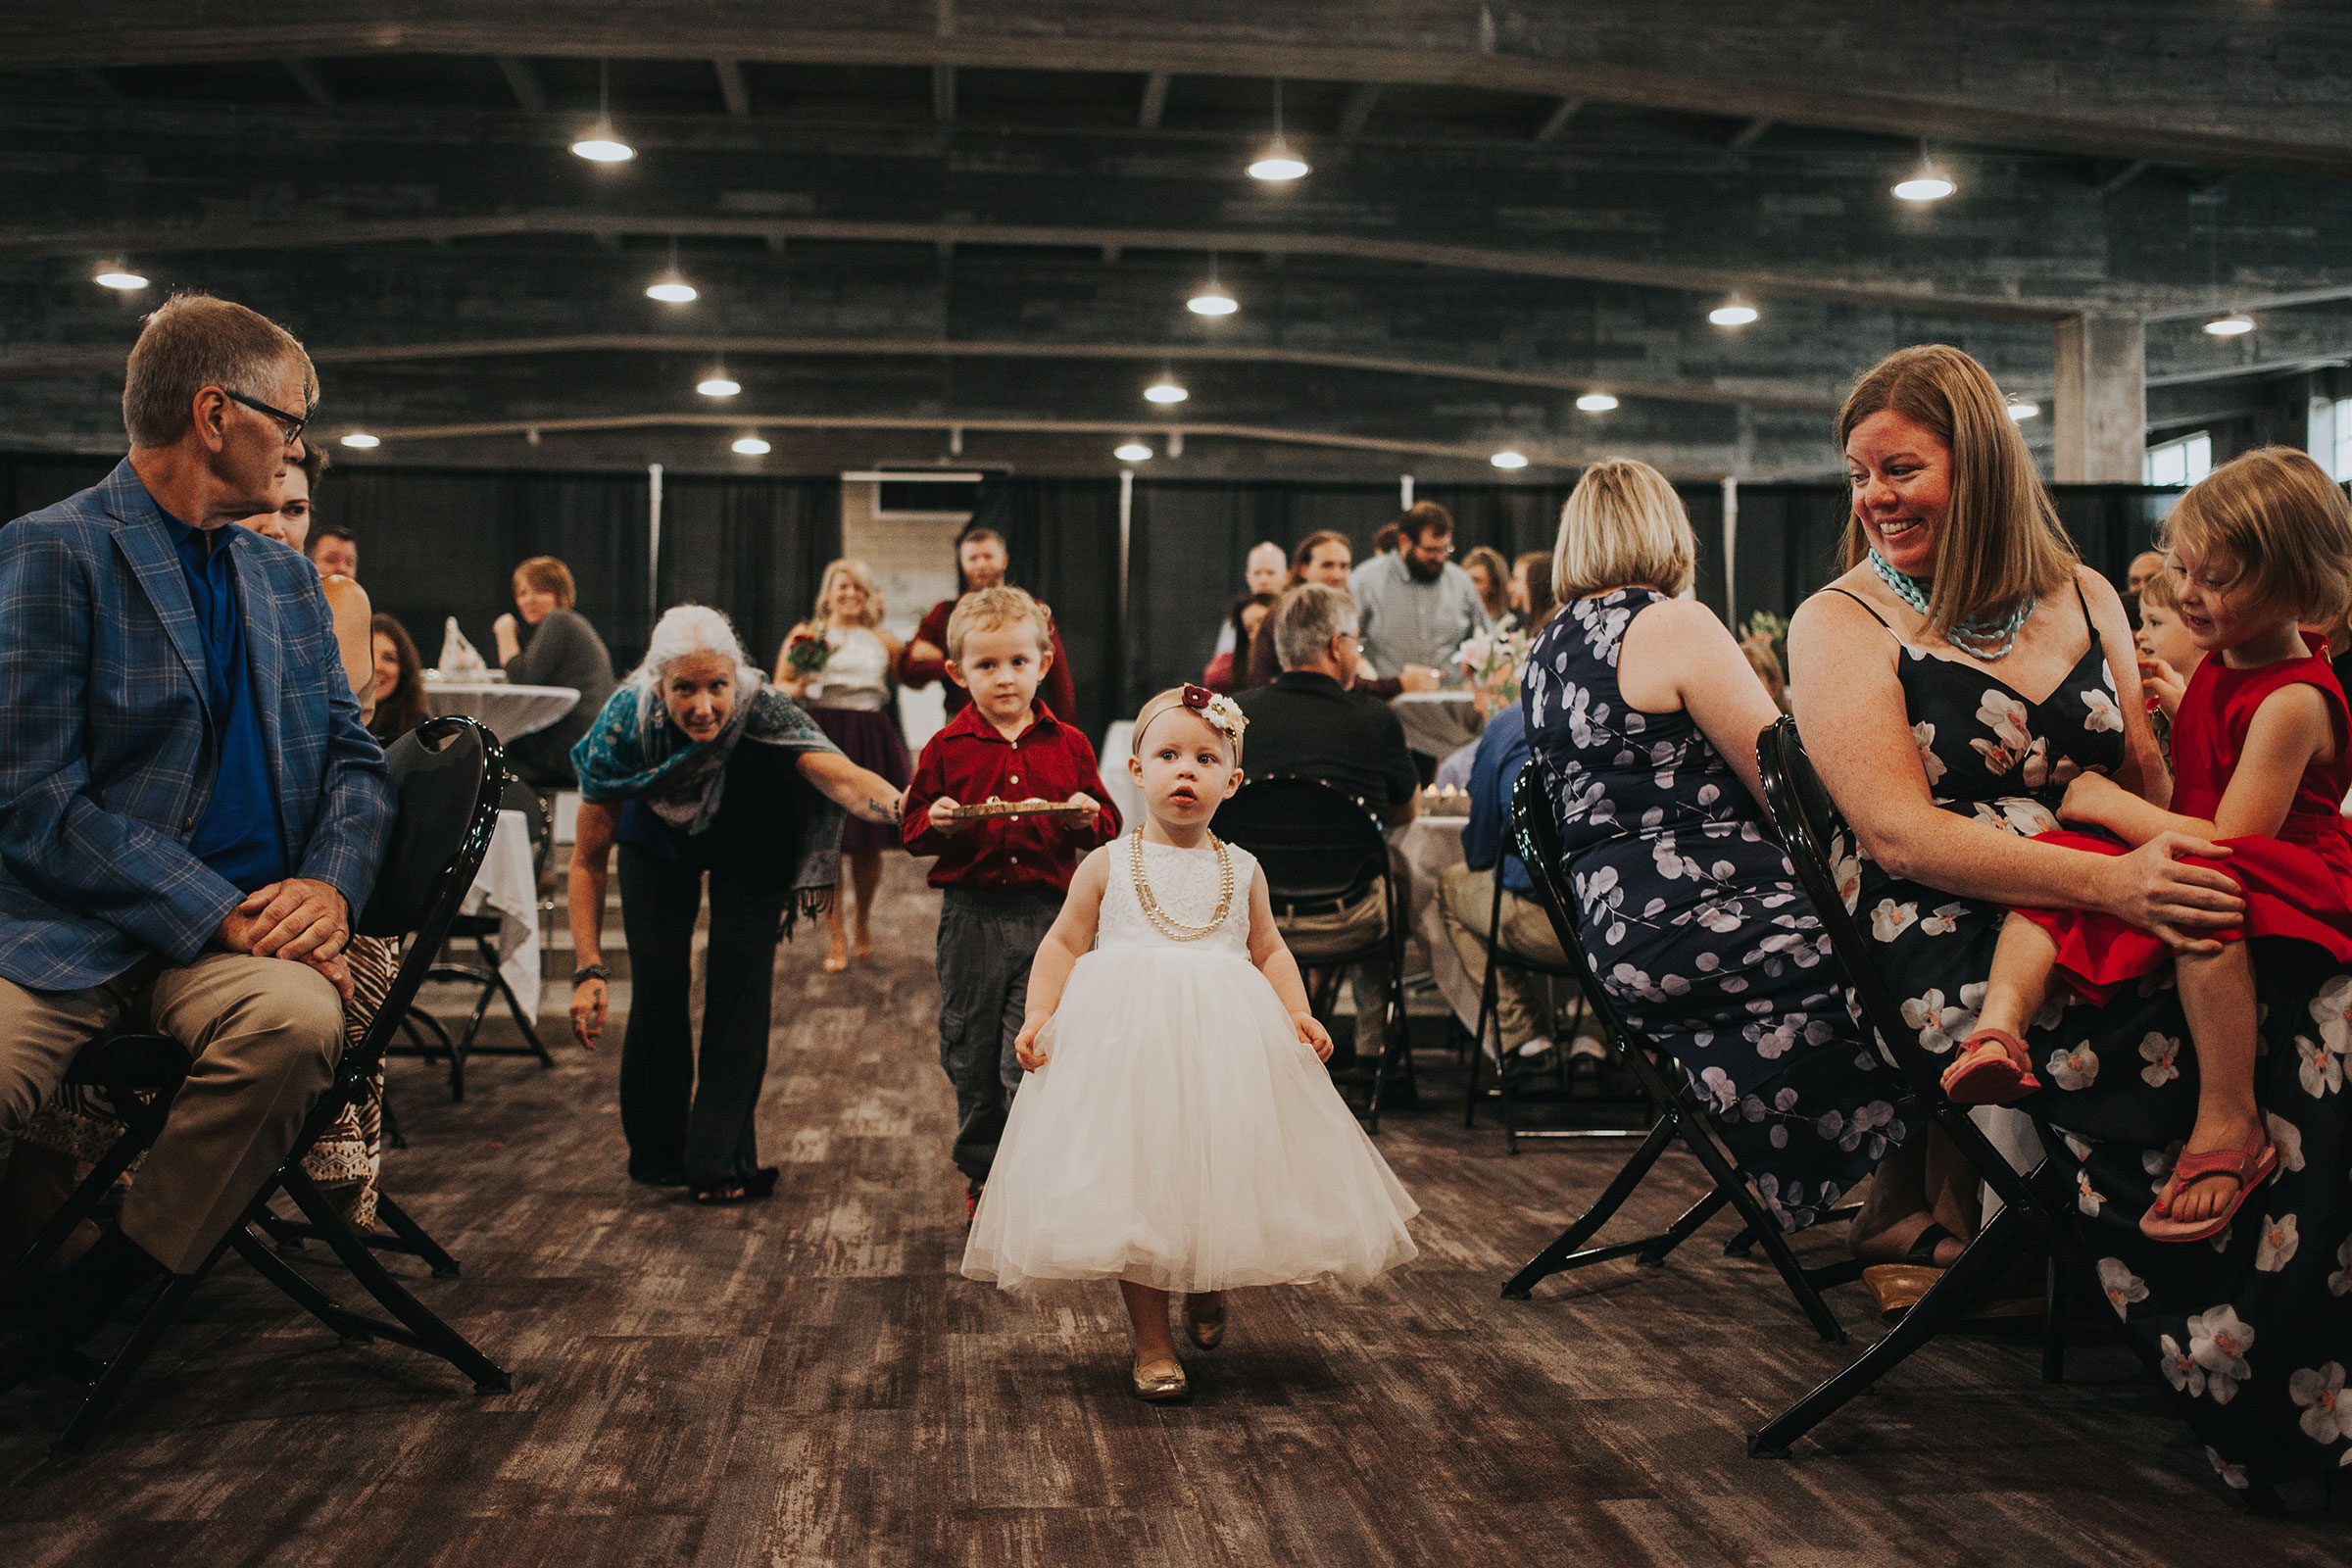 flower-girl-walking-down-aisle-pella-plaza-desmoines-iowa-raelyn-ramey-photography.jpg